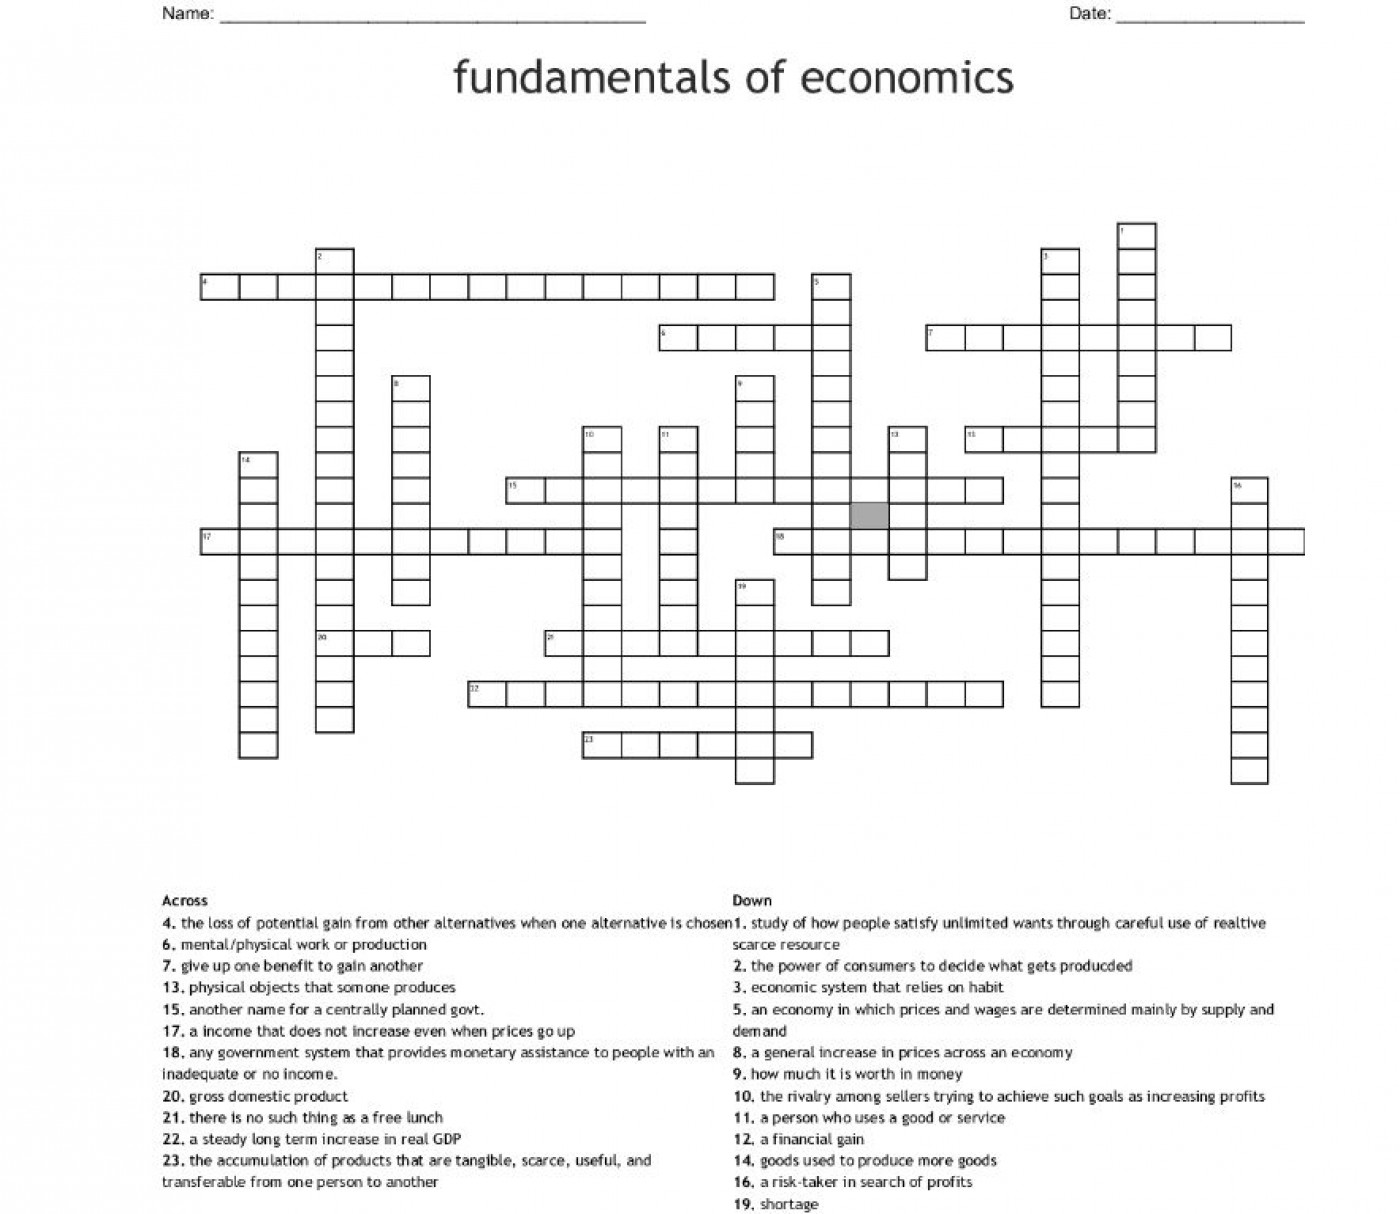 001 Imposing Prosperity Crossword Picture  Hollow Sound Of Sudden Clue Material 7 Letter1400